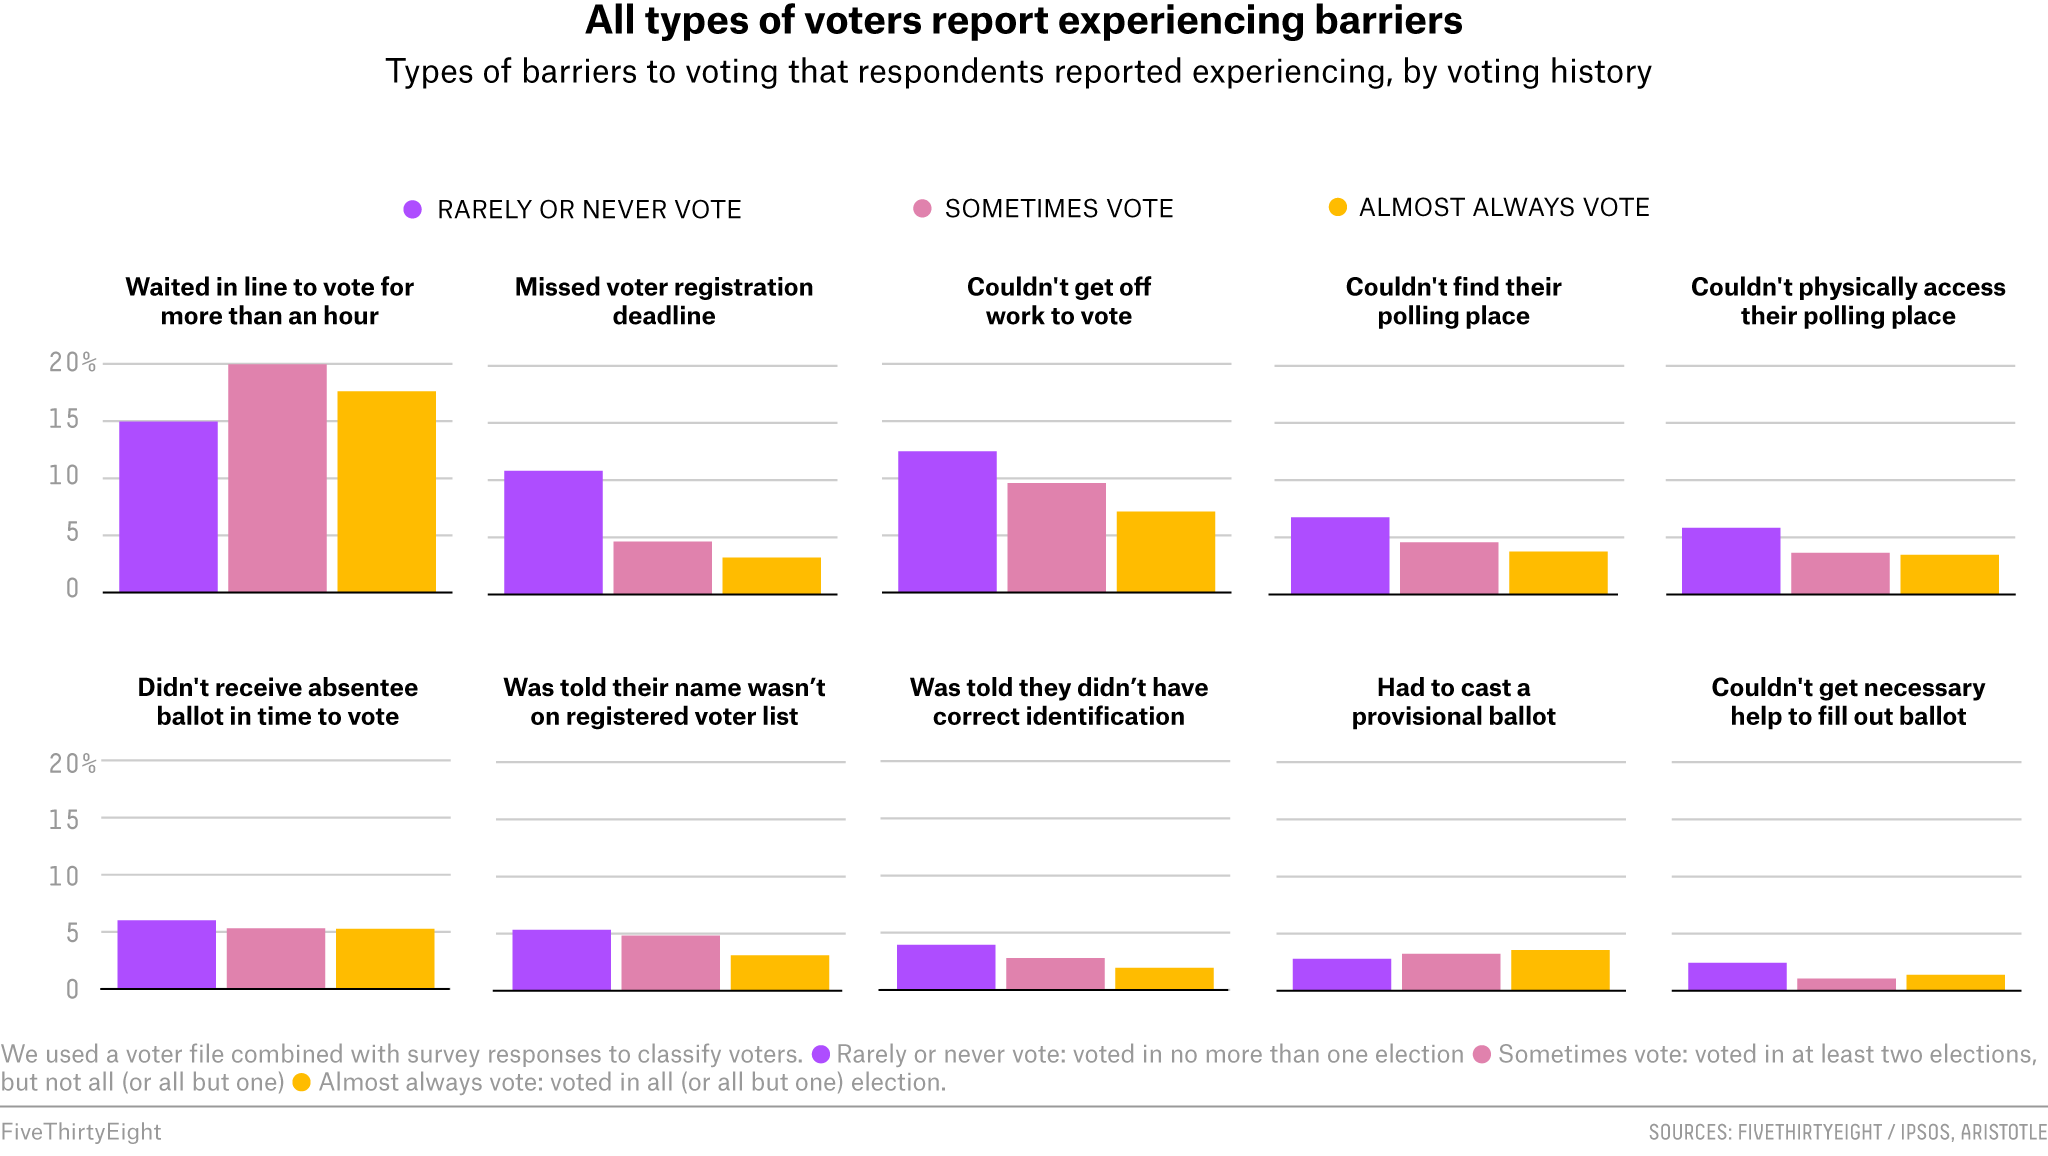 All types of voters report experiencing barriers